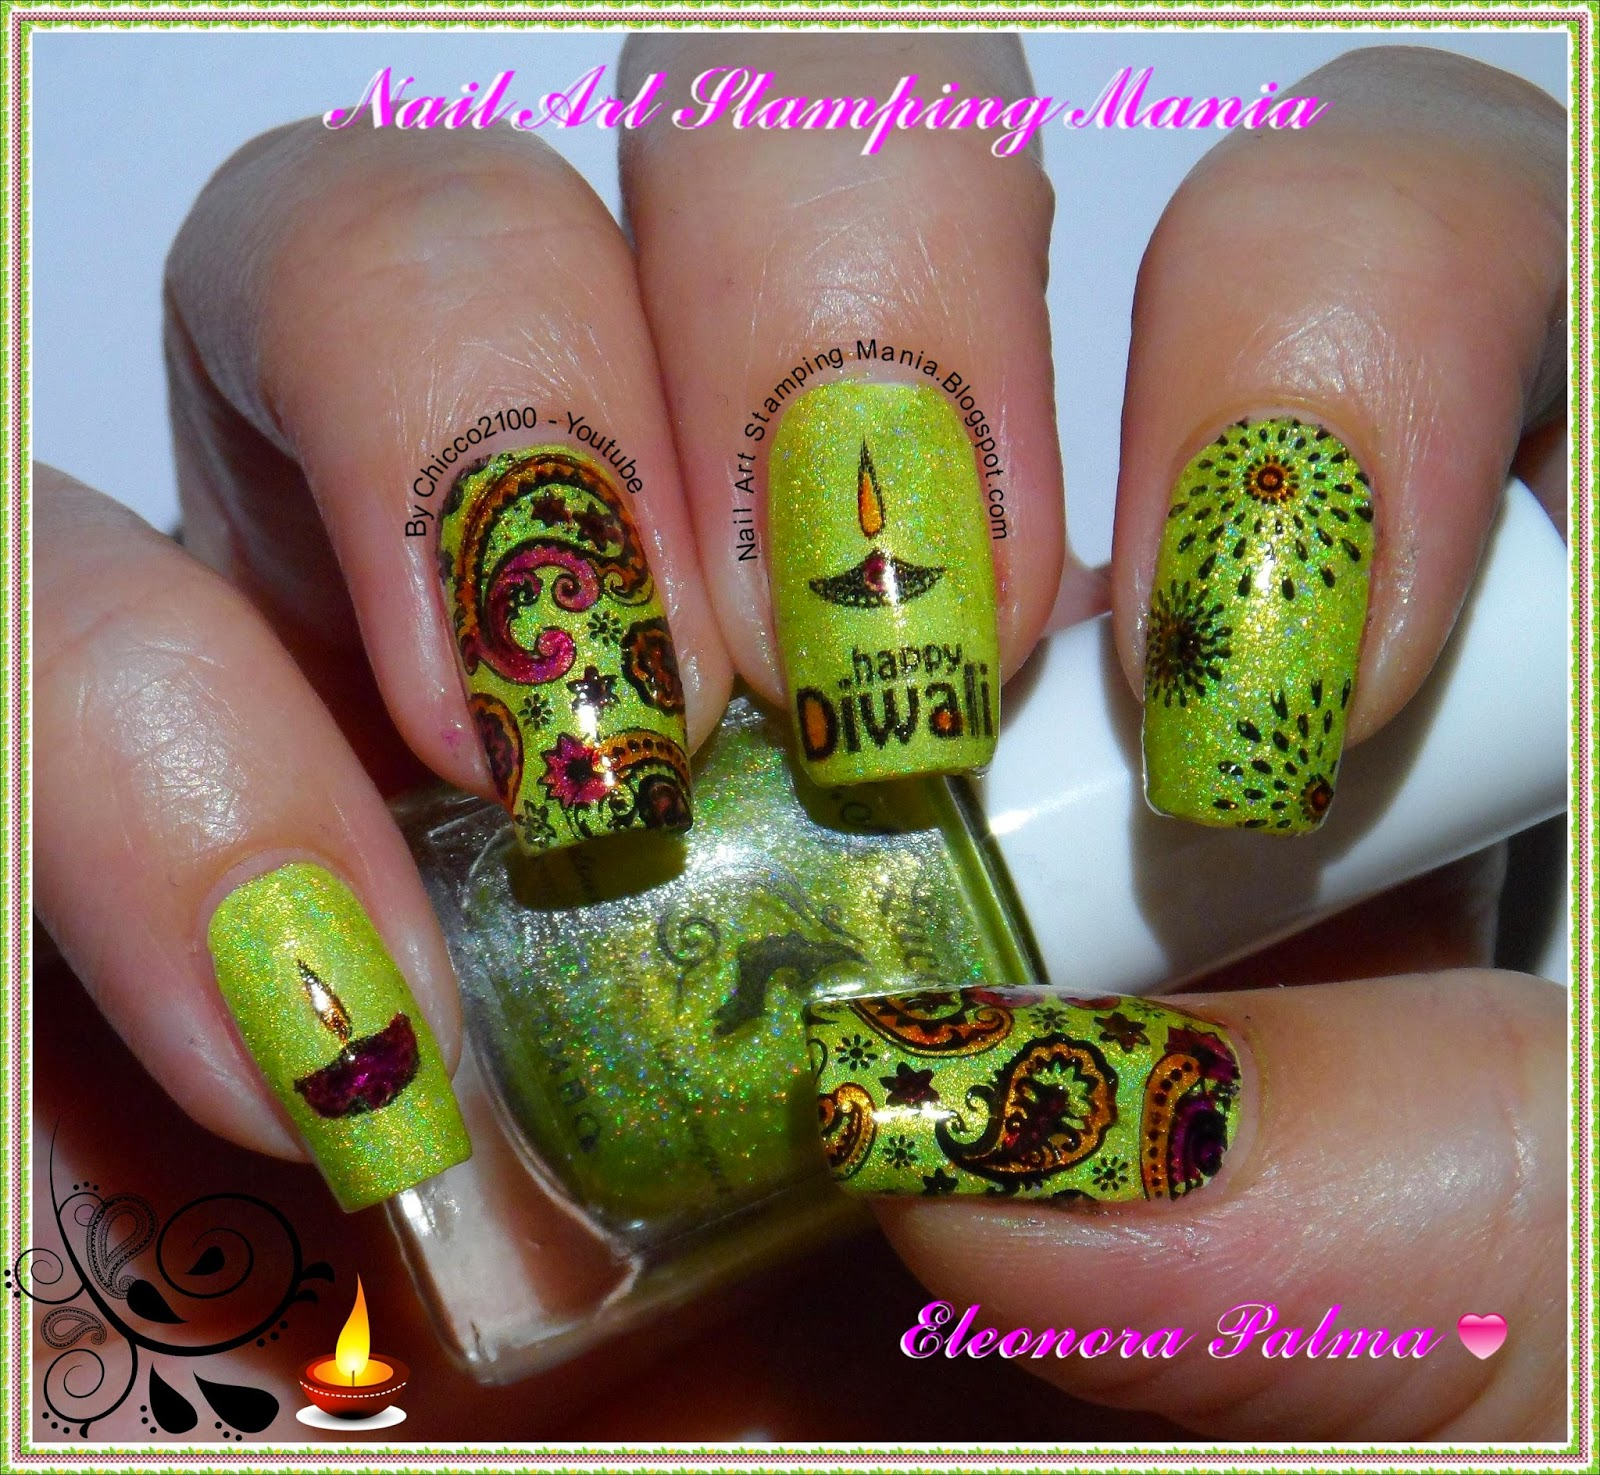 Nail Art Stamping Mania: Diwali Festival Manicure With Konad And VL ...